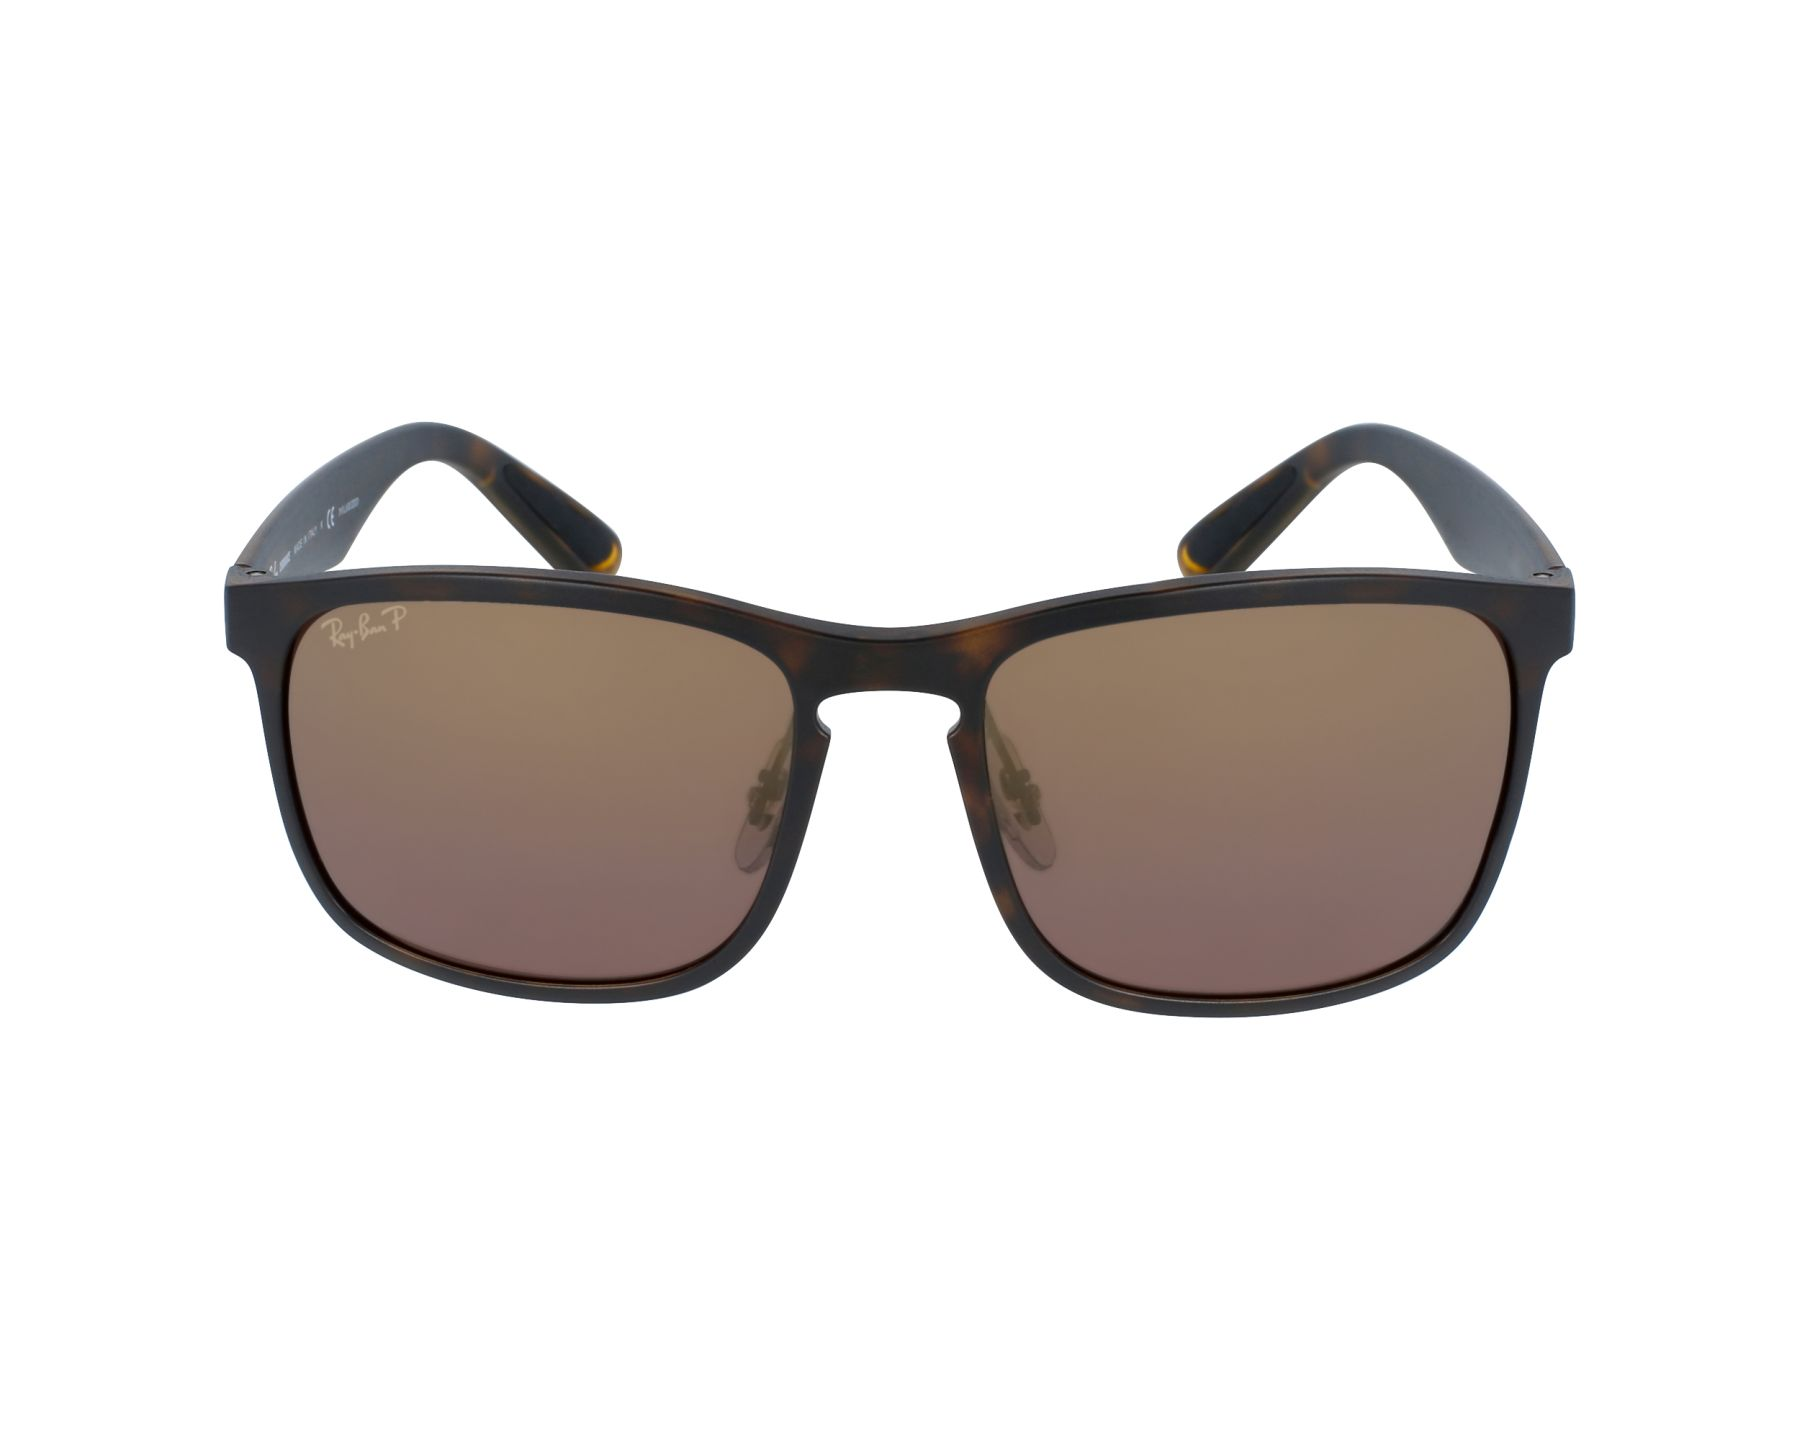 3c94d4d439 Ray Ban Rb4264 Uk - Bitterroot Public Library